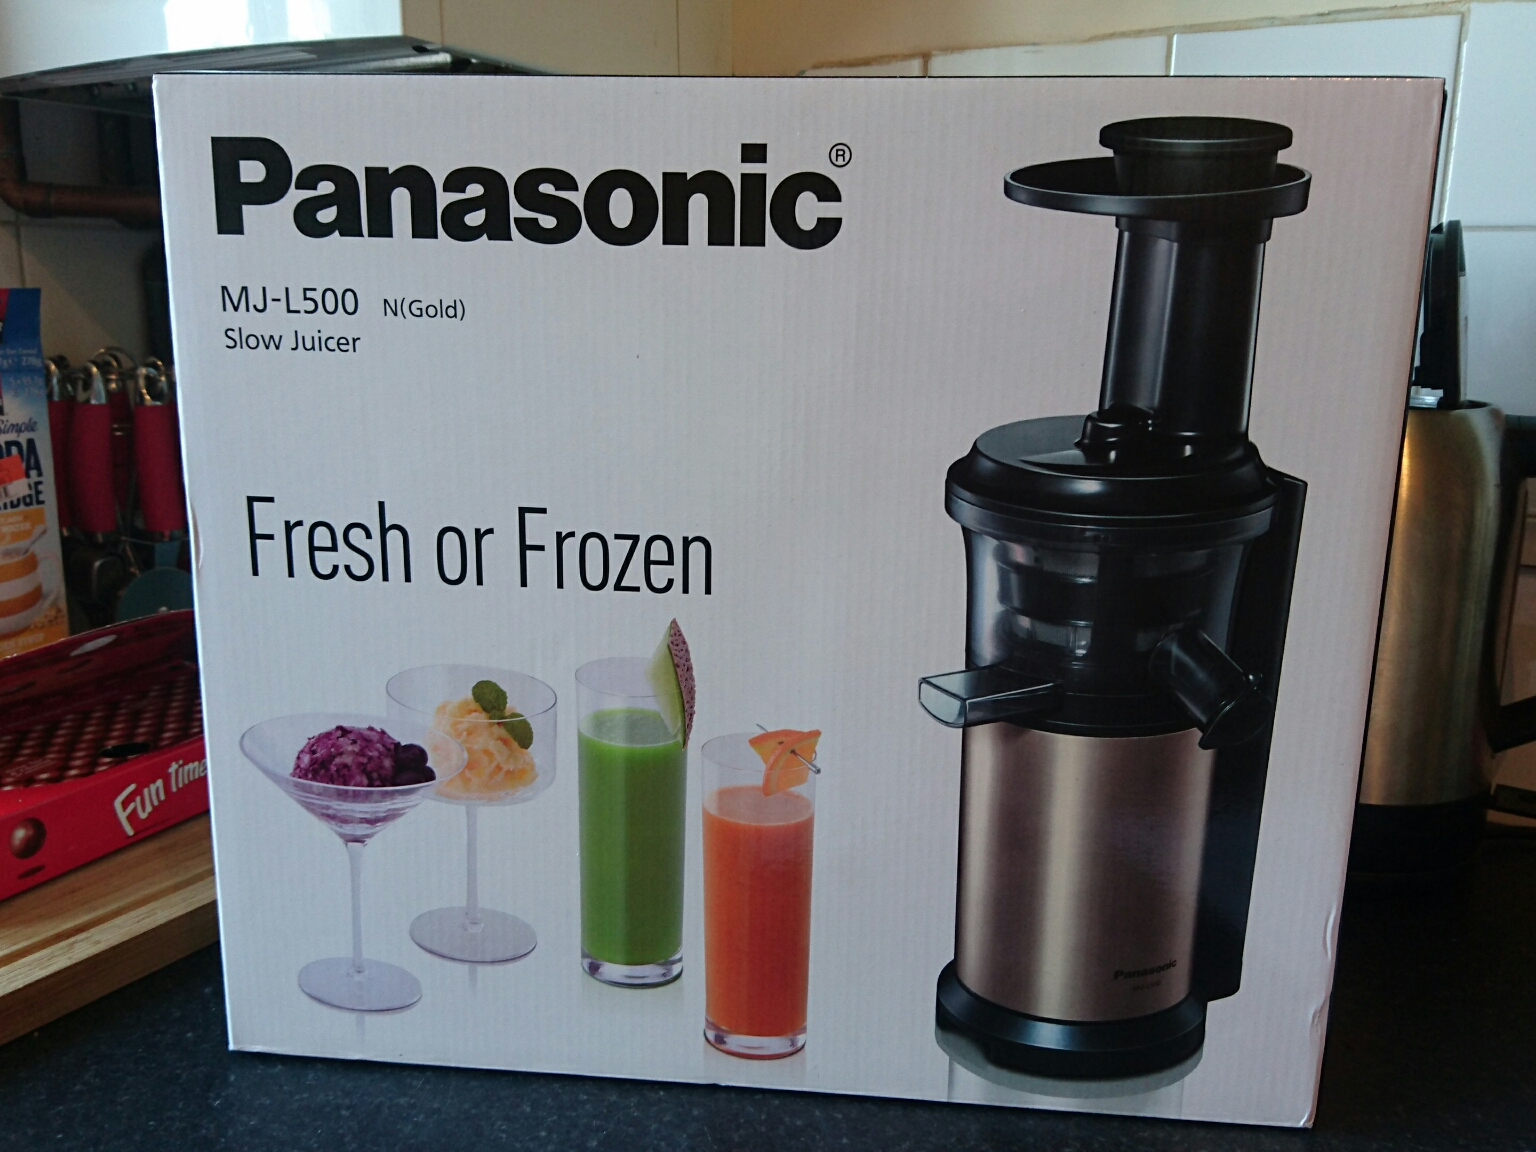 Panasonic Slow Juicer Mj L500 Recipes : United Cakedom: Panasonic Slow Juicer: MJ-L500 Review